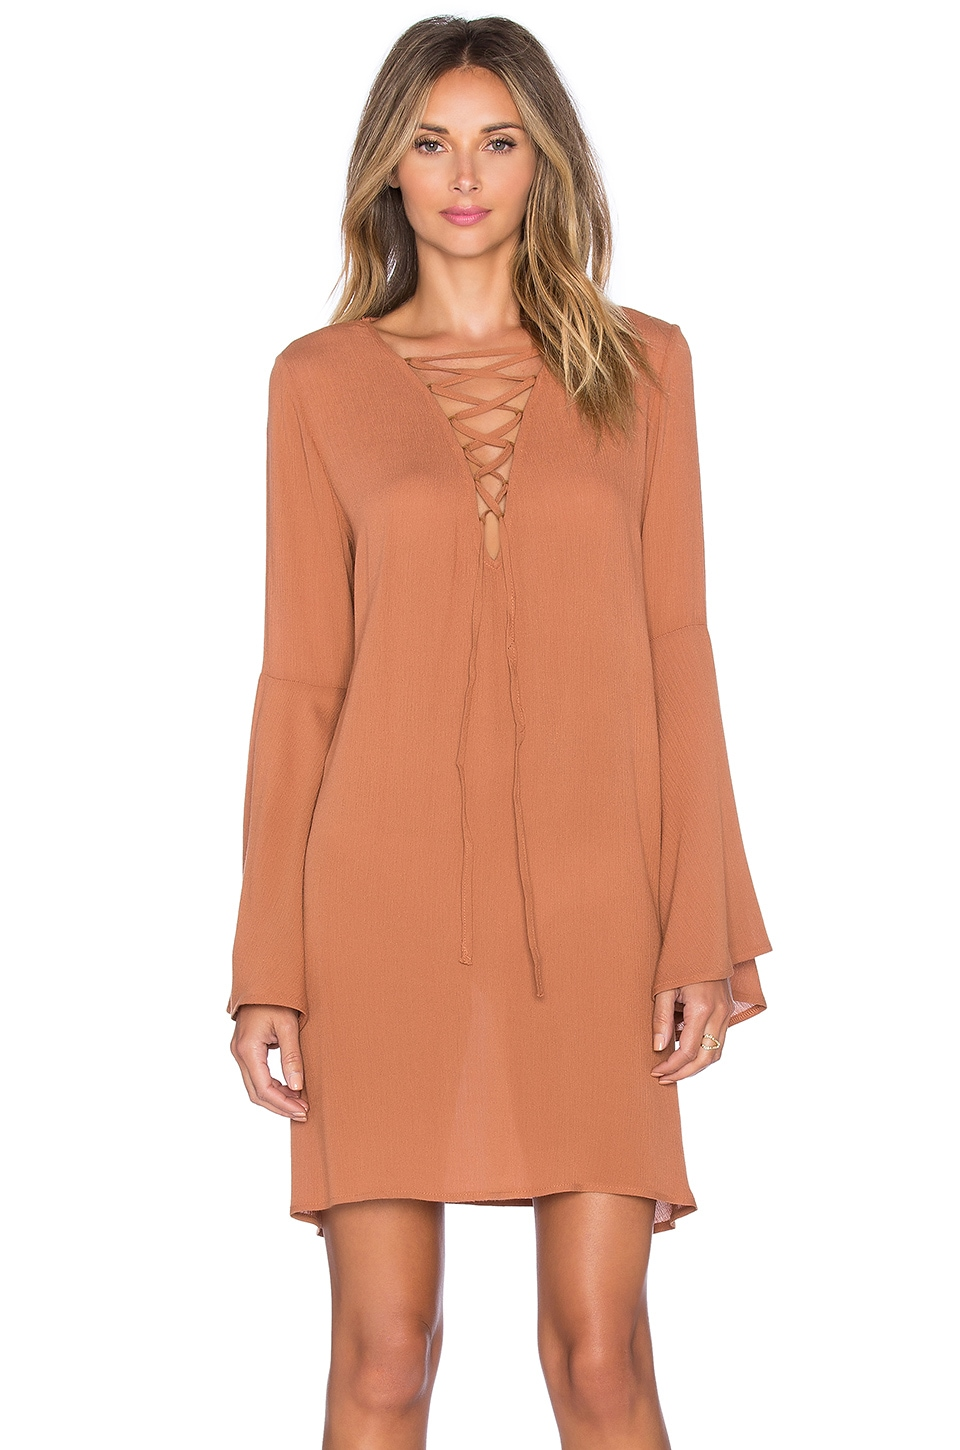 GLAMOROUS Lace Up Mini Shift Dress in Tan